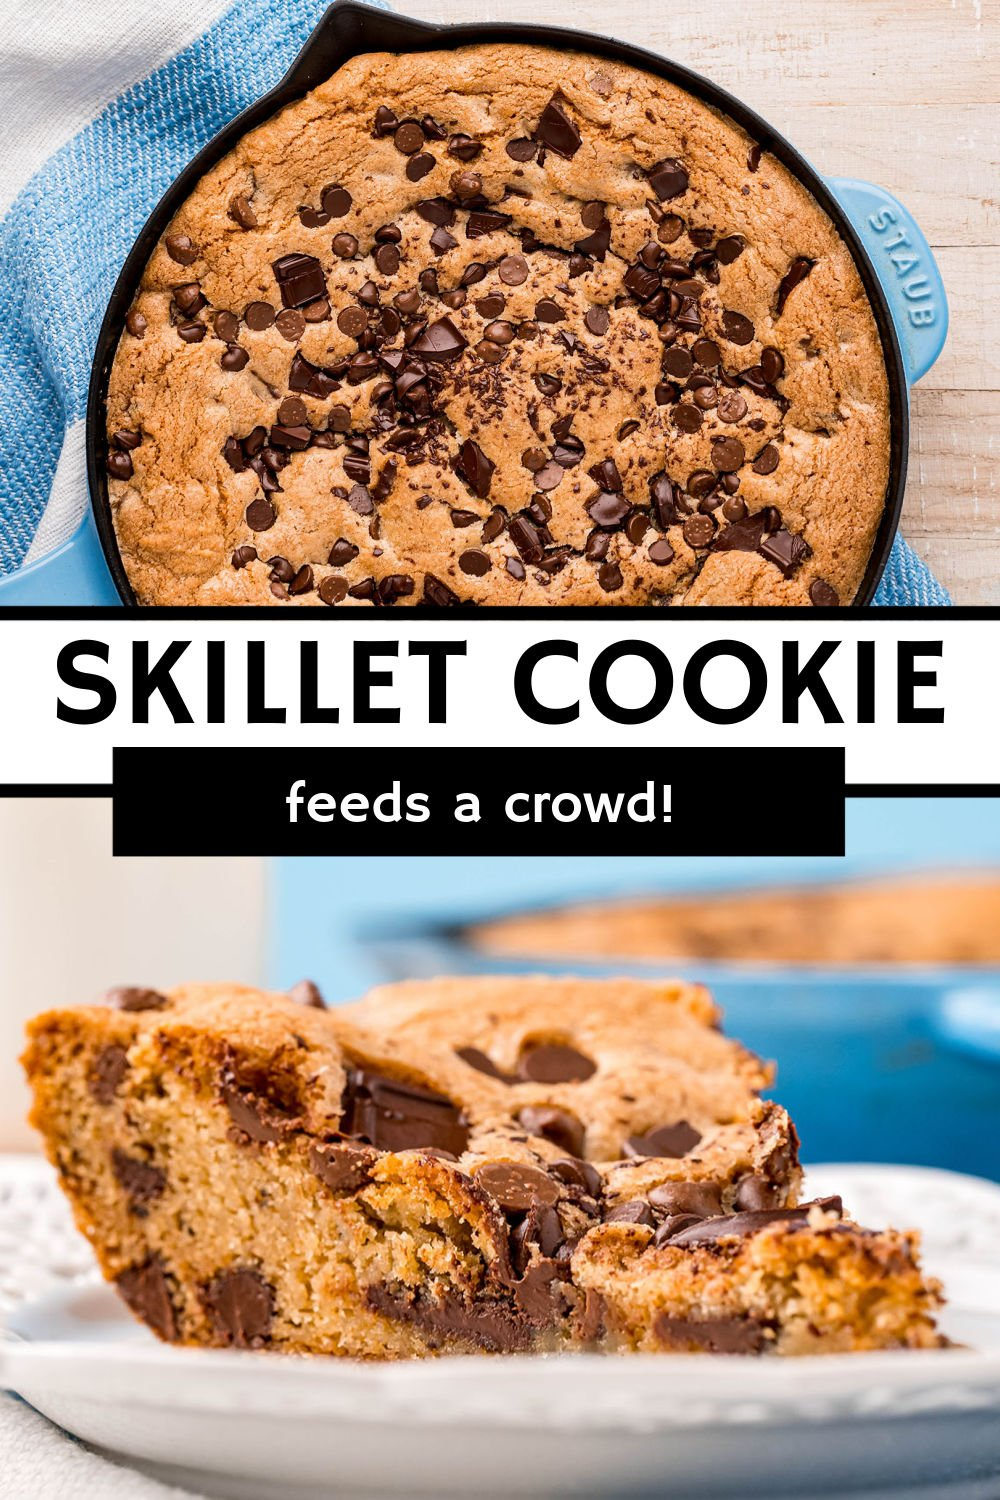 Have you ever made a skillet cookie? A giant chocolate chip cookie baked in a cast-iron skillet. Let it cool to slice and serve a group, or eat it warm with a scoop of ice cream straight out of the skillet!  You can also switch up the mix-ins to suit your taste buds.   www.persnicketyplates.com